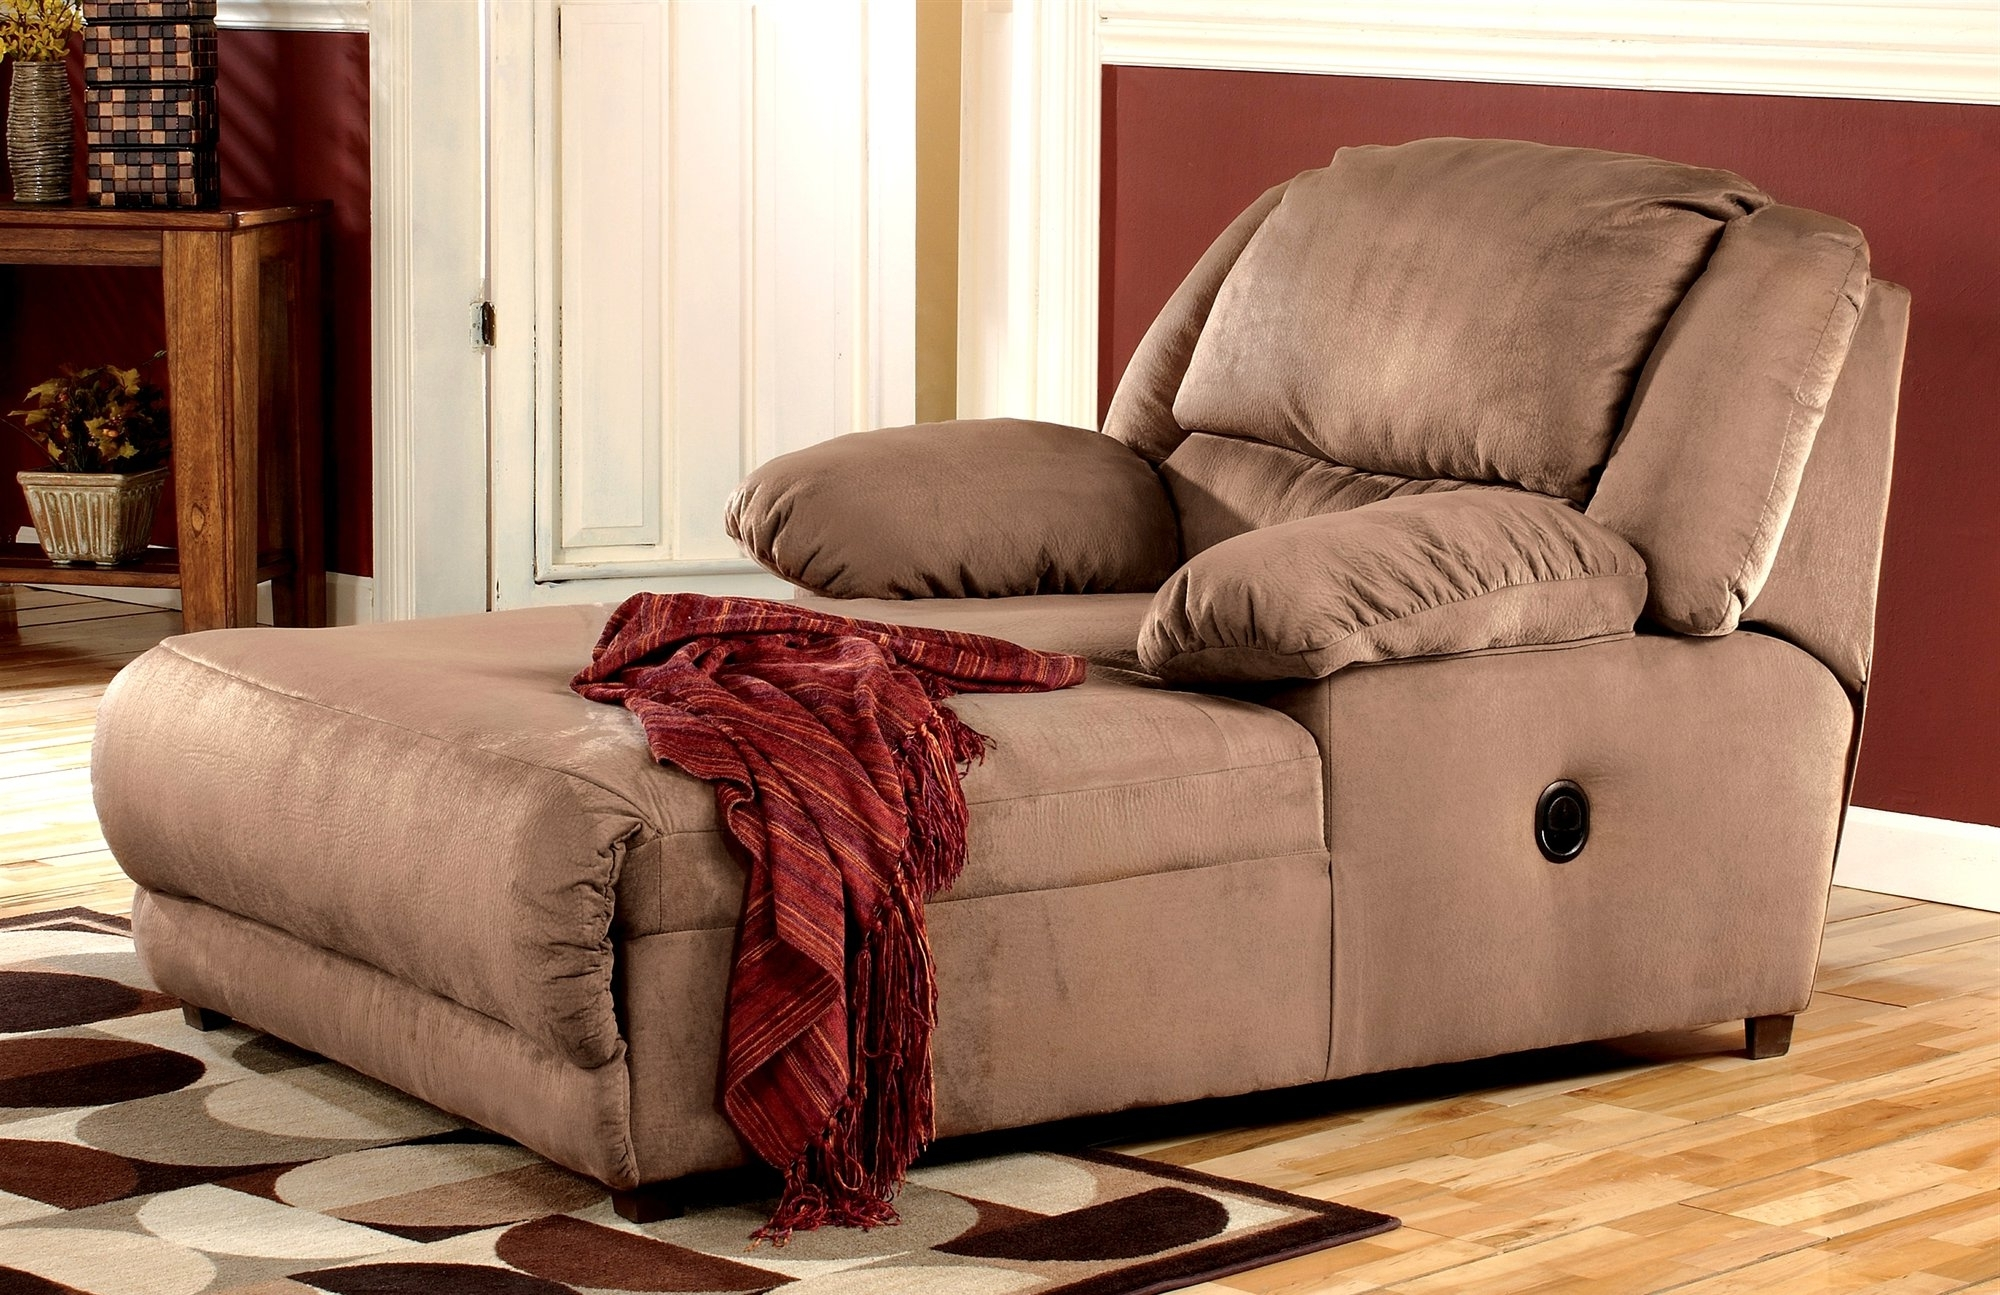 Popular Double Chaise Lounges For Living Room In Lounge Chair : Small Bedroom Chaise Lounge Chairs Small Chaise (View 10 of 15)